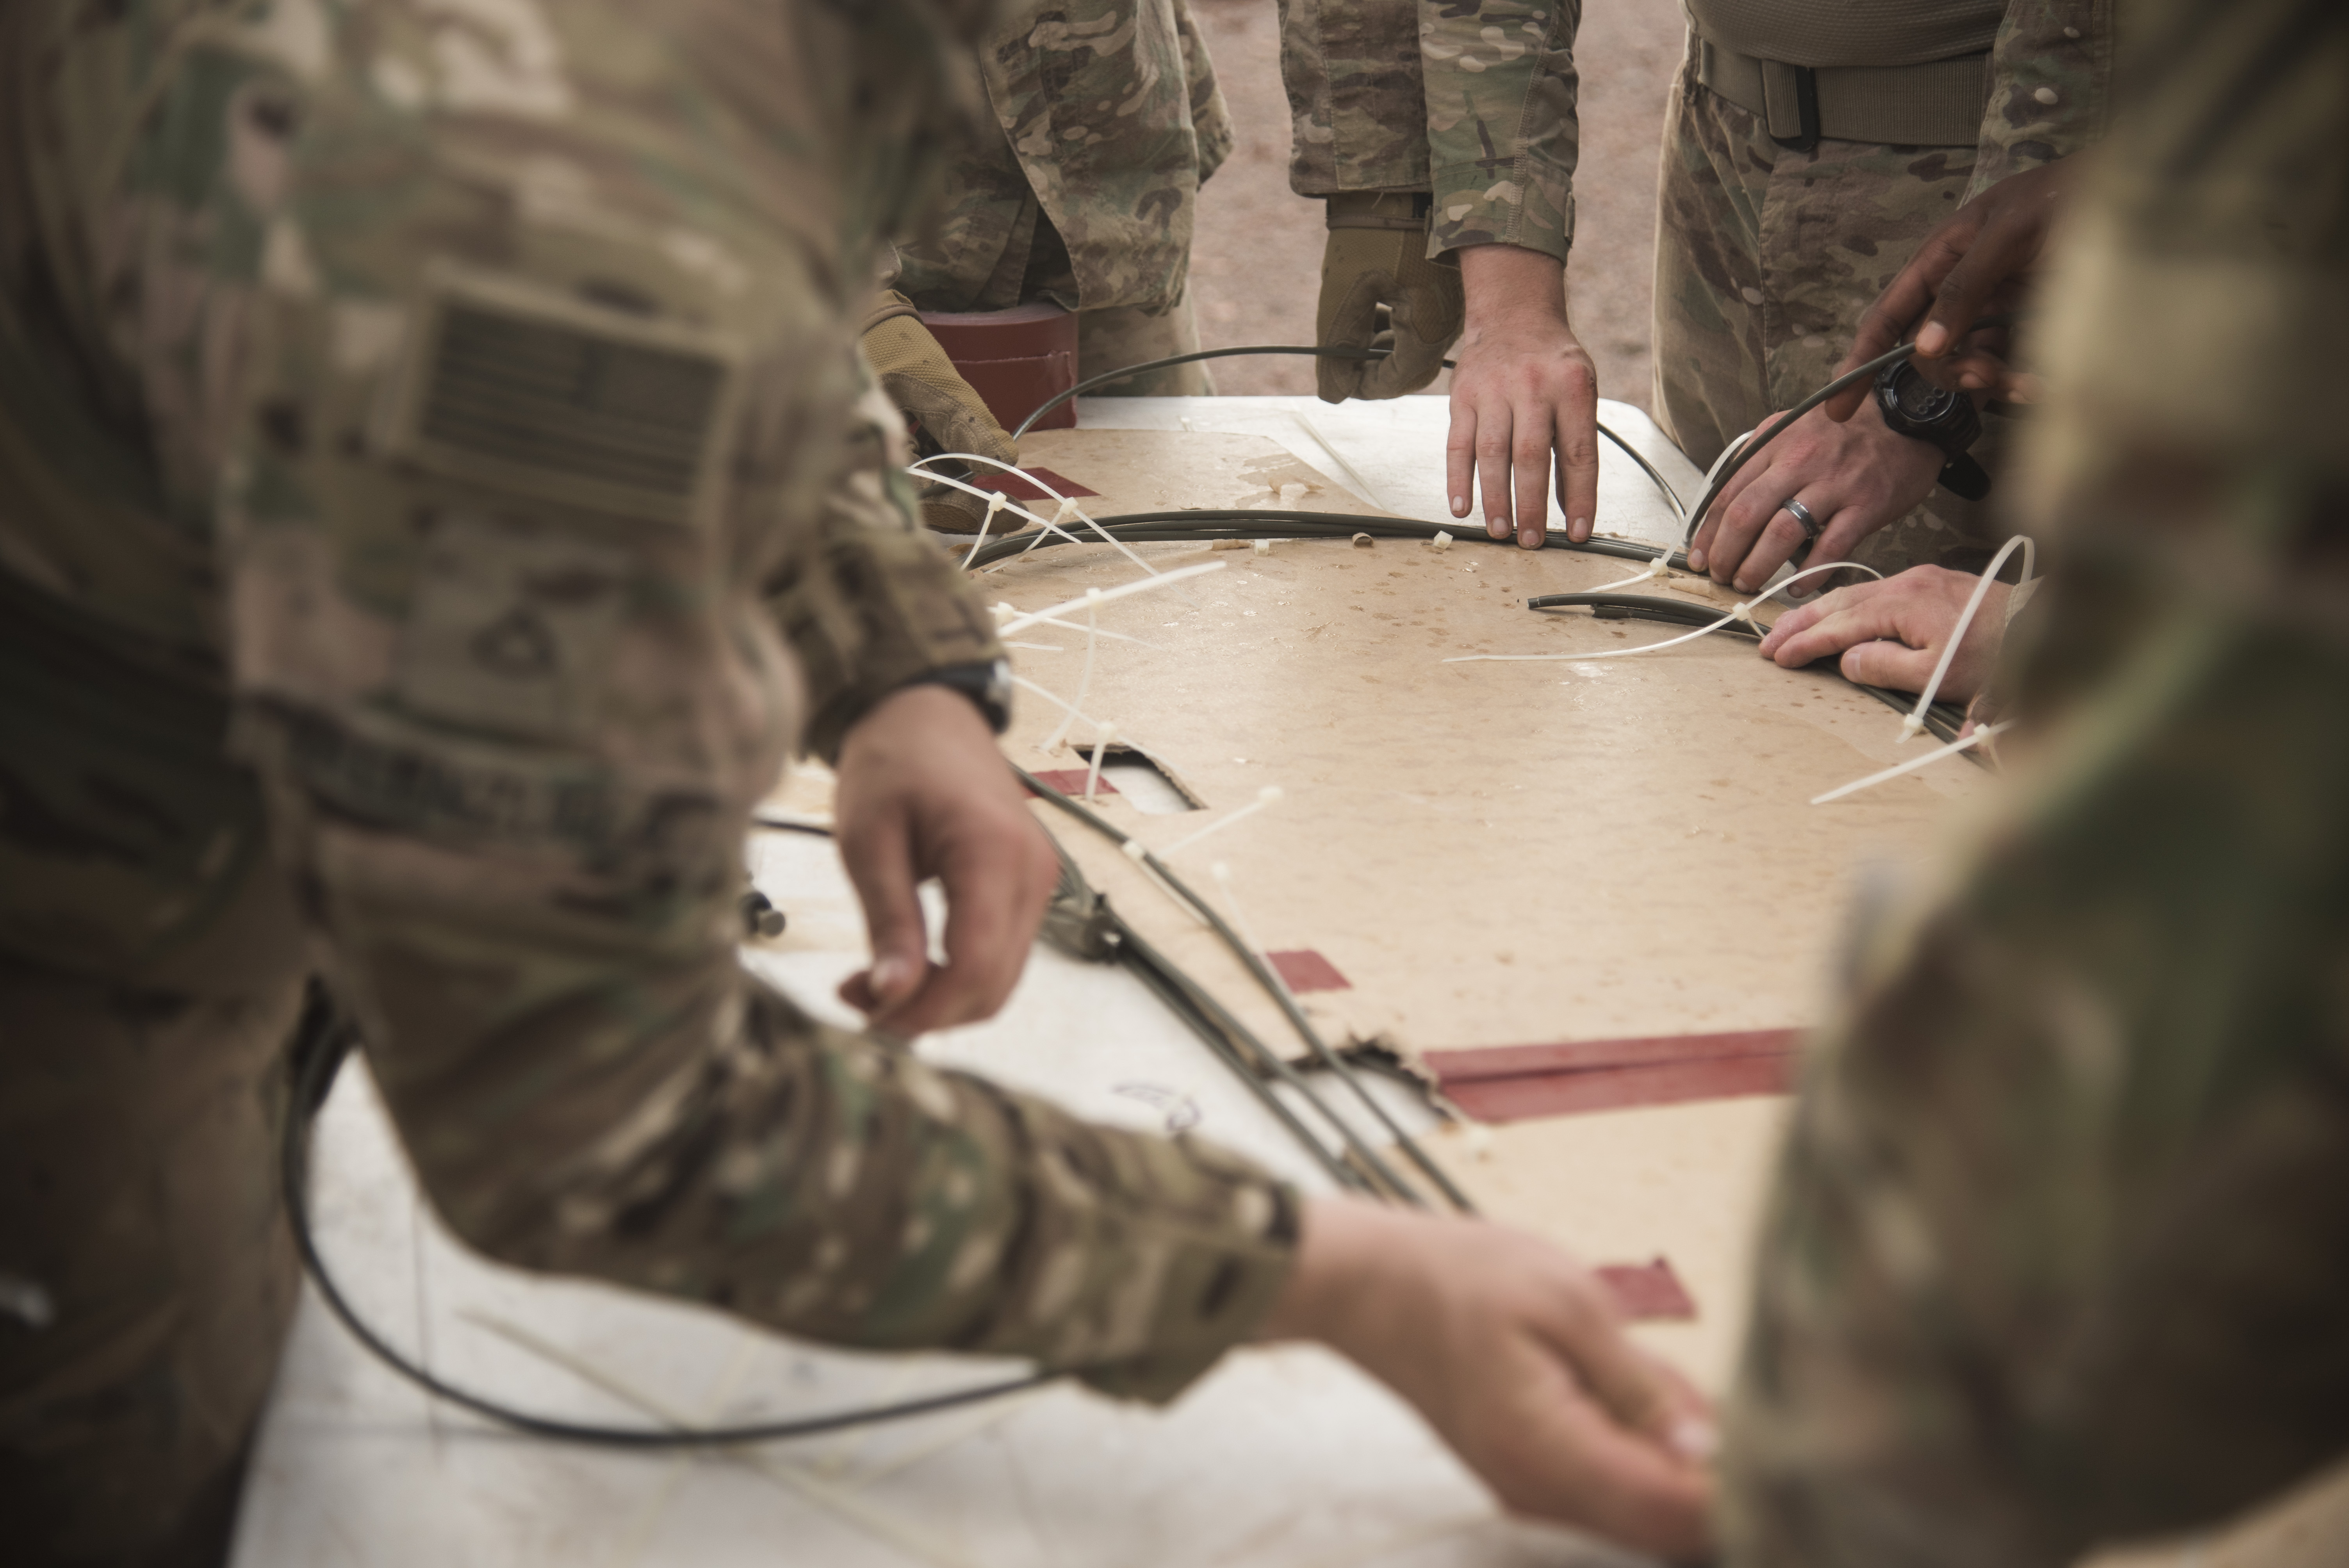 U.S. Army Soldiers from Bravo Company, 3rd Battalion, 15th Infantry Regiment, place M14 time fuse cords around a piece of cardboard during demolition training, Aug. 30, 2016, in Arta, Djibouti.  Bravo Co., 3/15 Inf. Rgt., from Fort Stewart, Ga., serves as the East Africa Response Force assigned to Combined Joint Task Force-Horn of Africa to provide rapid response and security to protect embassies and foreign assets in the area of responsibility of CJTF-HOA. (U.S. Air Force photo by Staff Sgt. Tiffany DeNault)